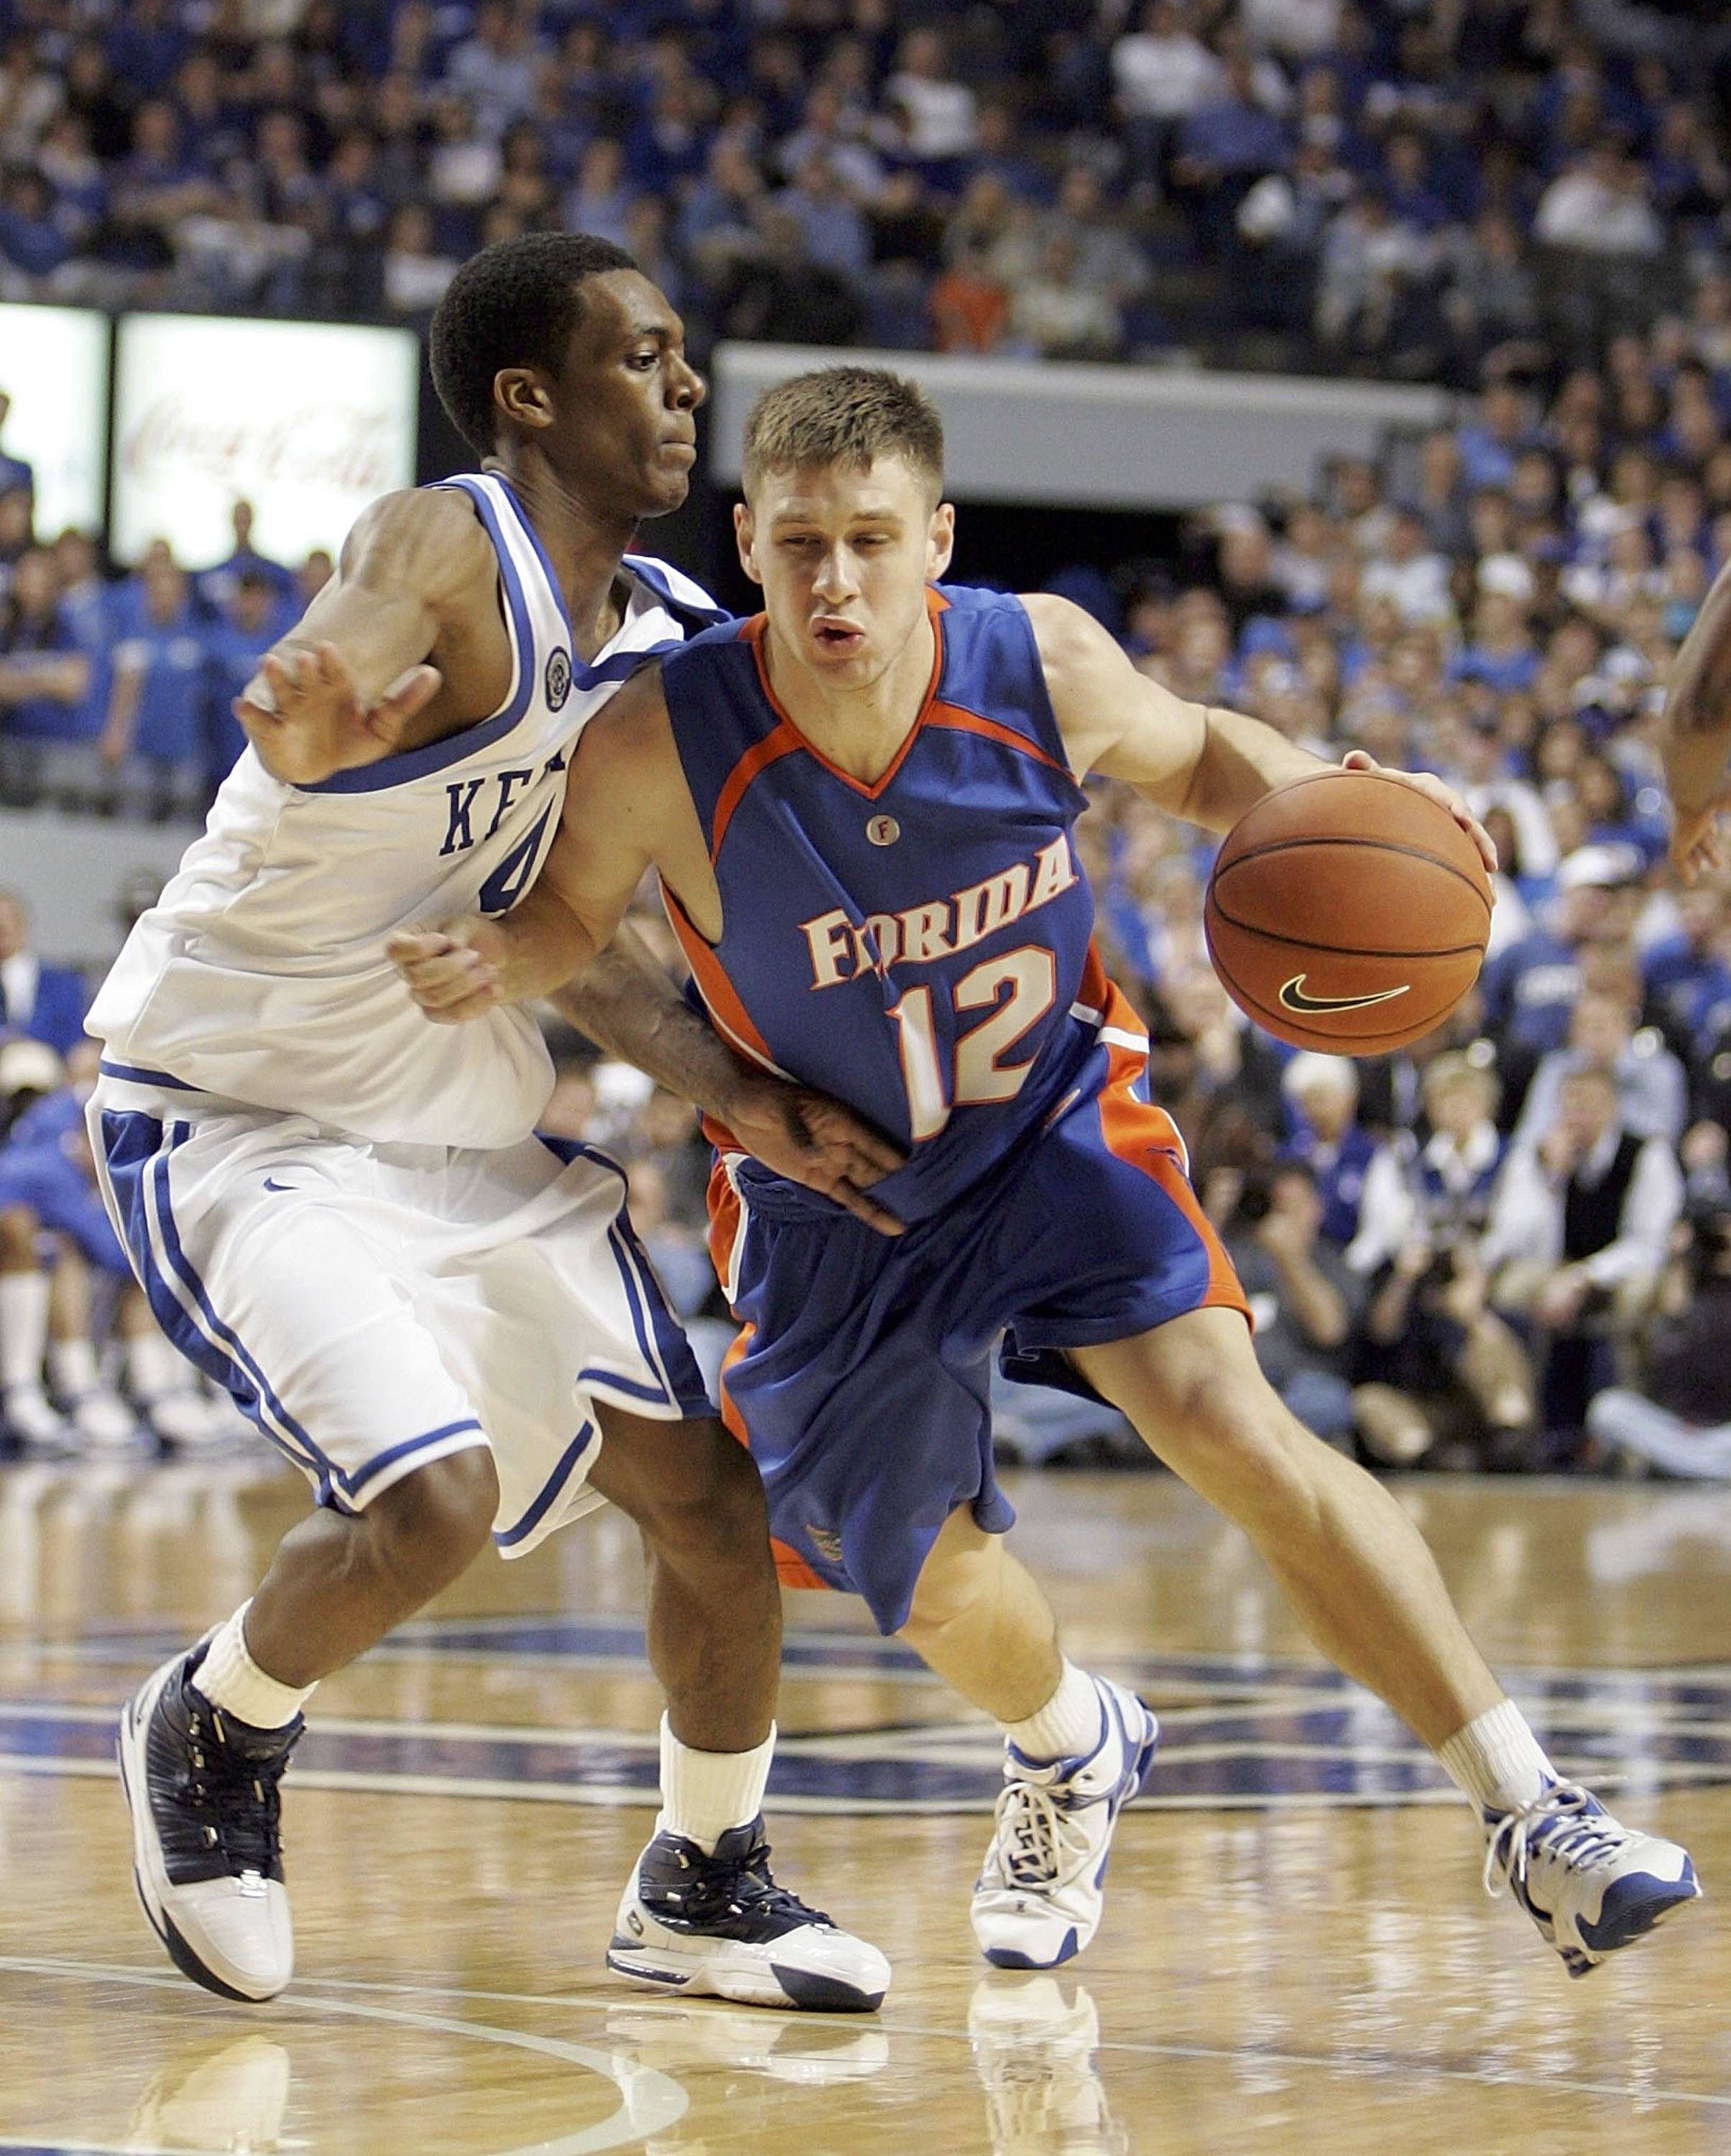 Lee Humphrey #11 of the Florida Gators dribbles the ball